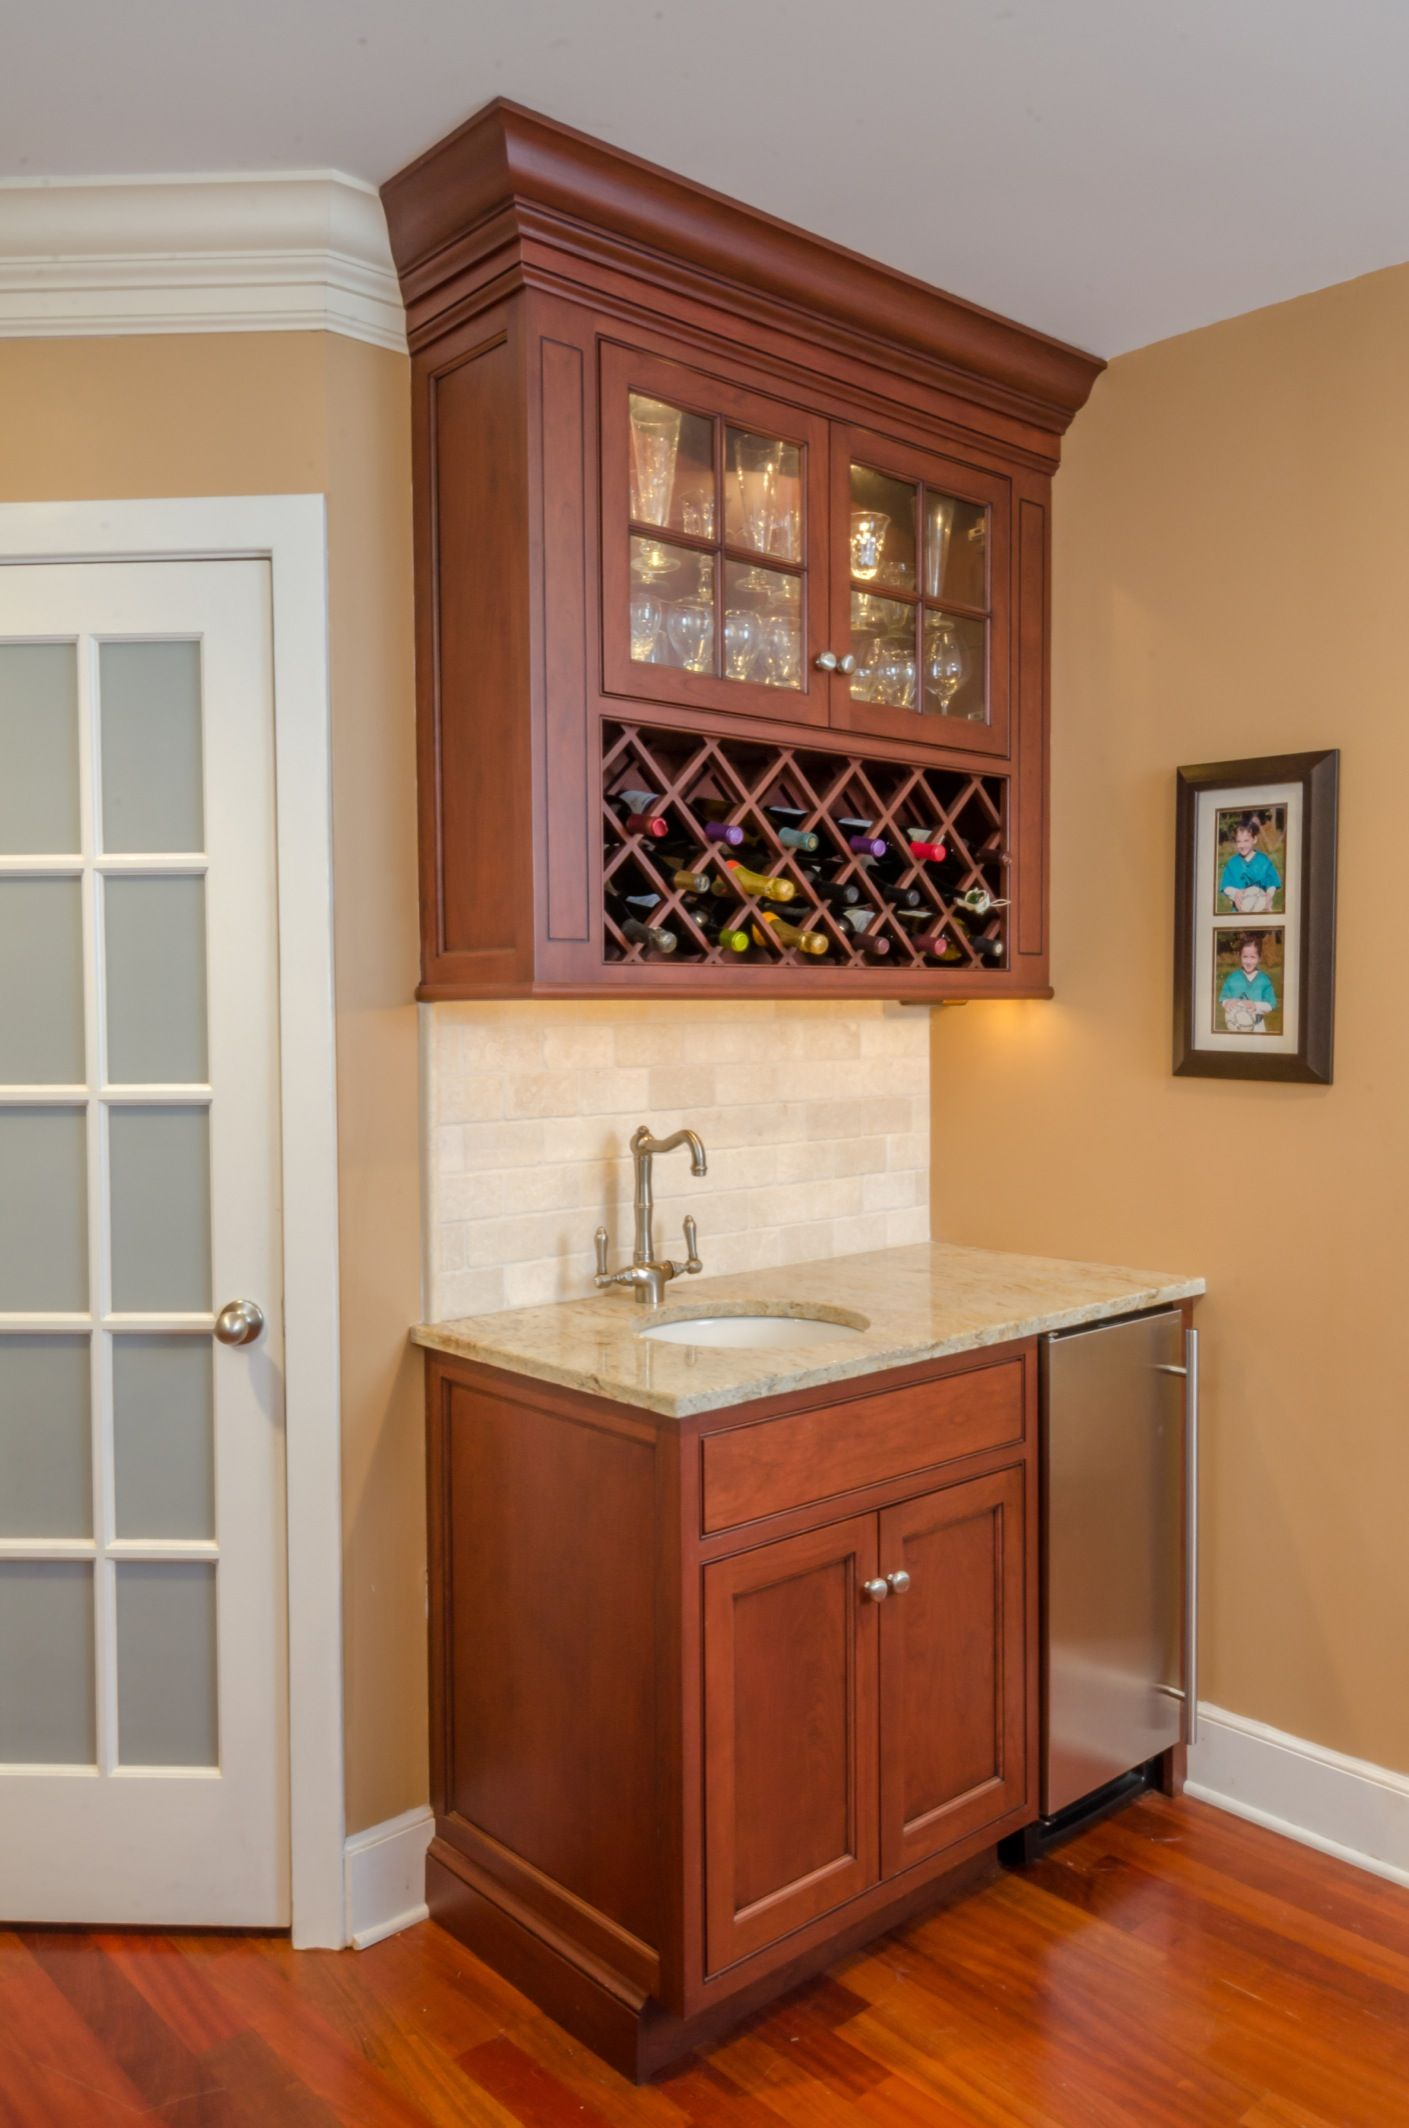 The Cabinets Kitchens Without Upper Cabinets Upper Cabinets Wine Cabinets